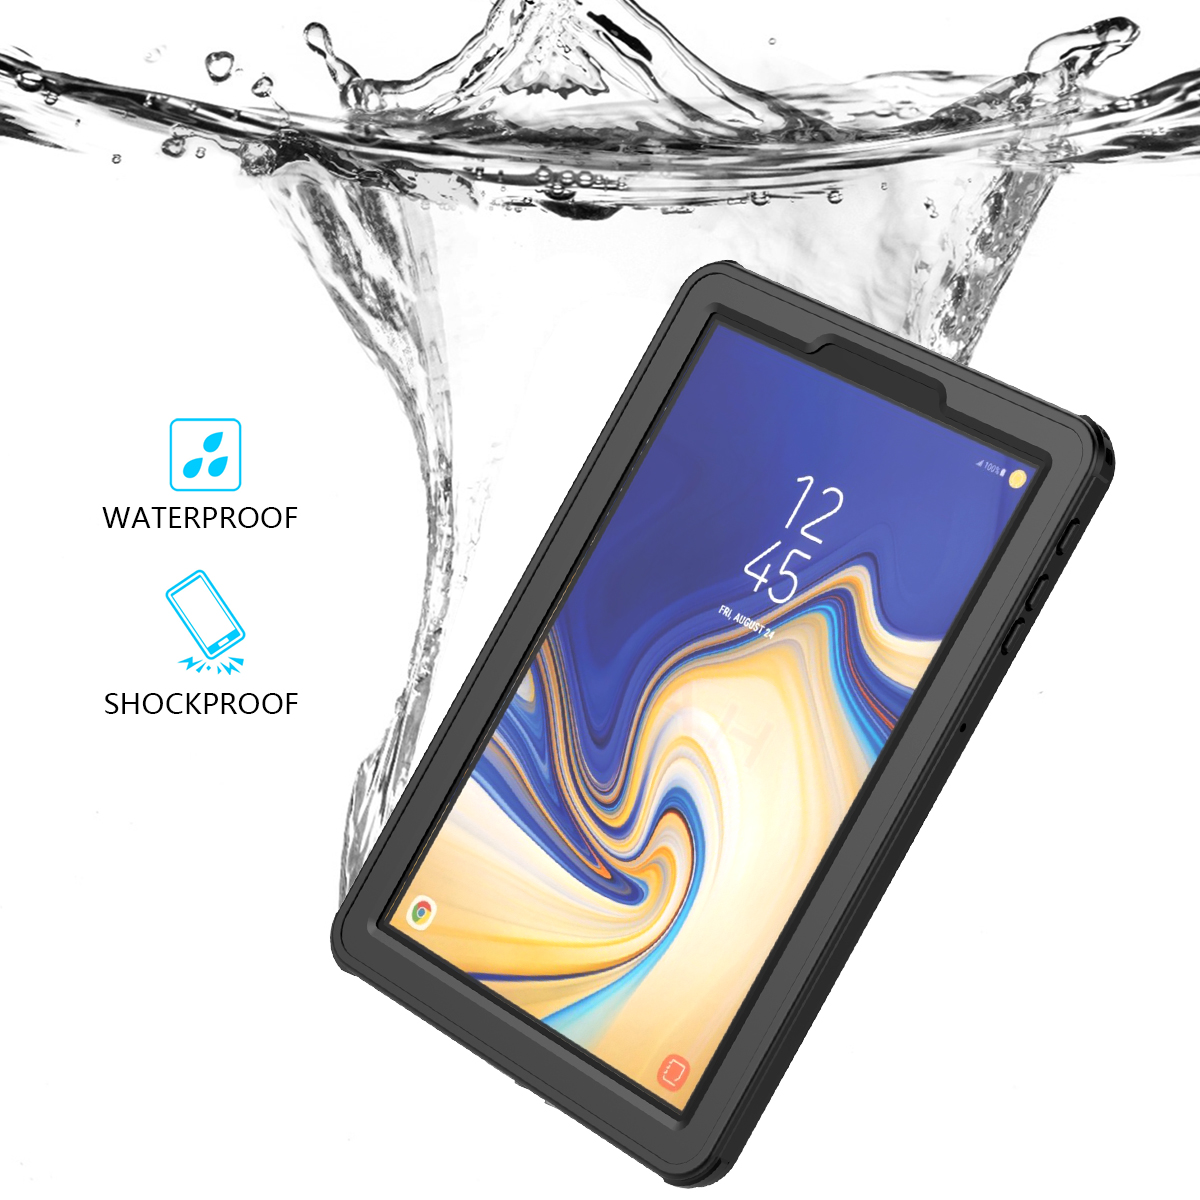 <font><b>Tablet</b></font> <font><b>Case</b></font> For <font><b>Samsung</b></font> <font><b>Galaxy</b></font> <font><b>Tab</b></font> <font><b>S4</b></font> <font><b>10.5</b></font> inch T830 T835 IP68 Waterproof Anti-drop Dustproof Shockproof <font><b>Tablets</b></font> Protector Cover image